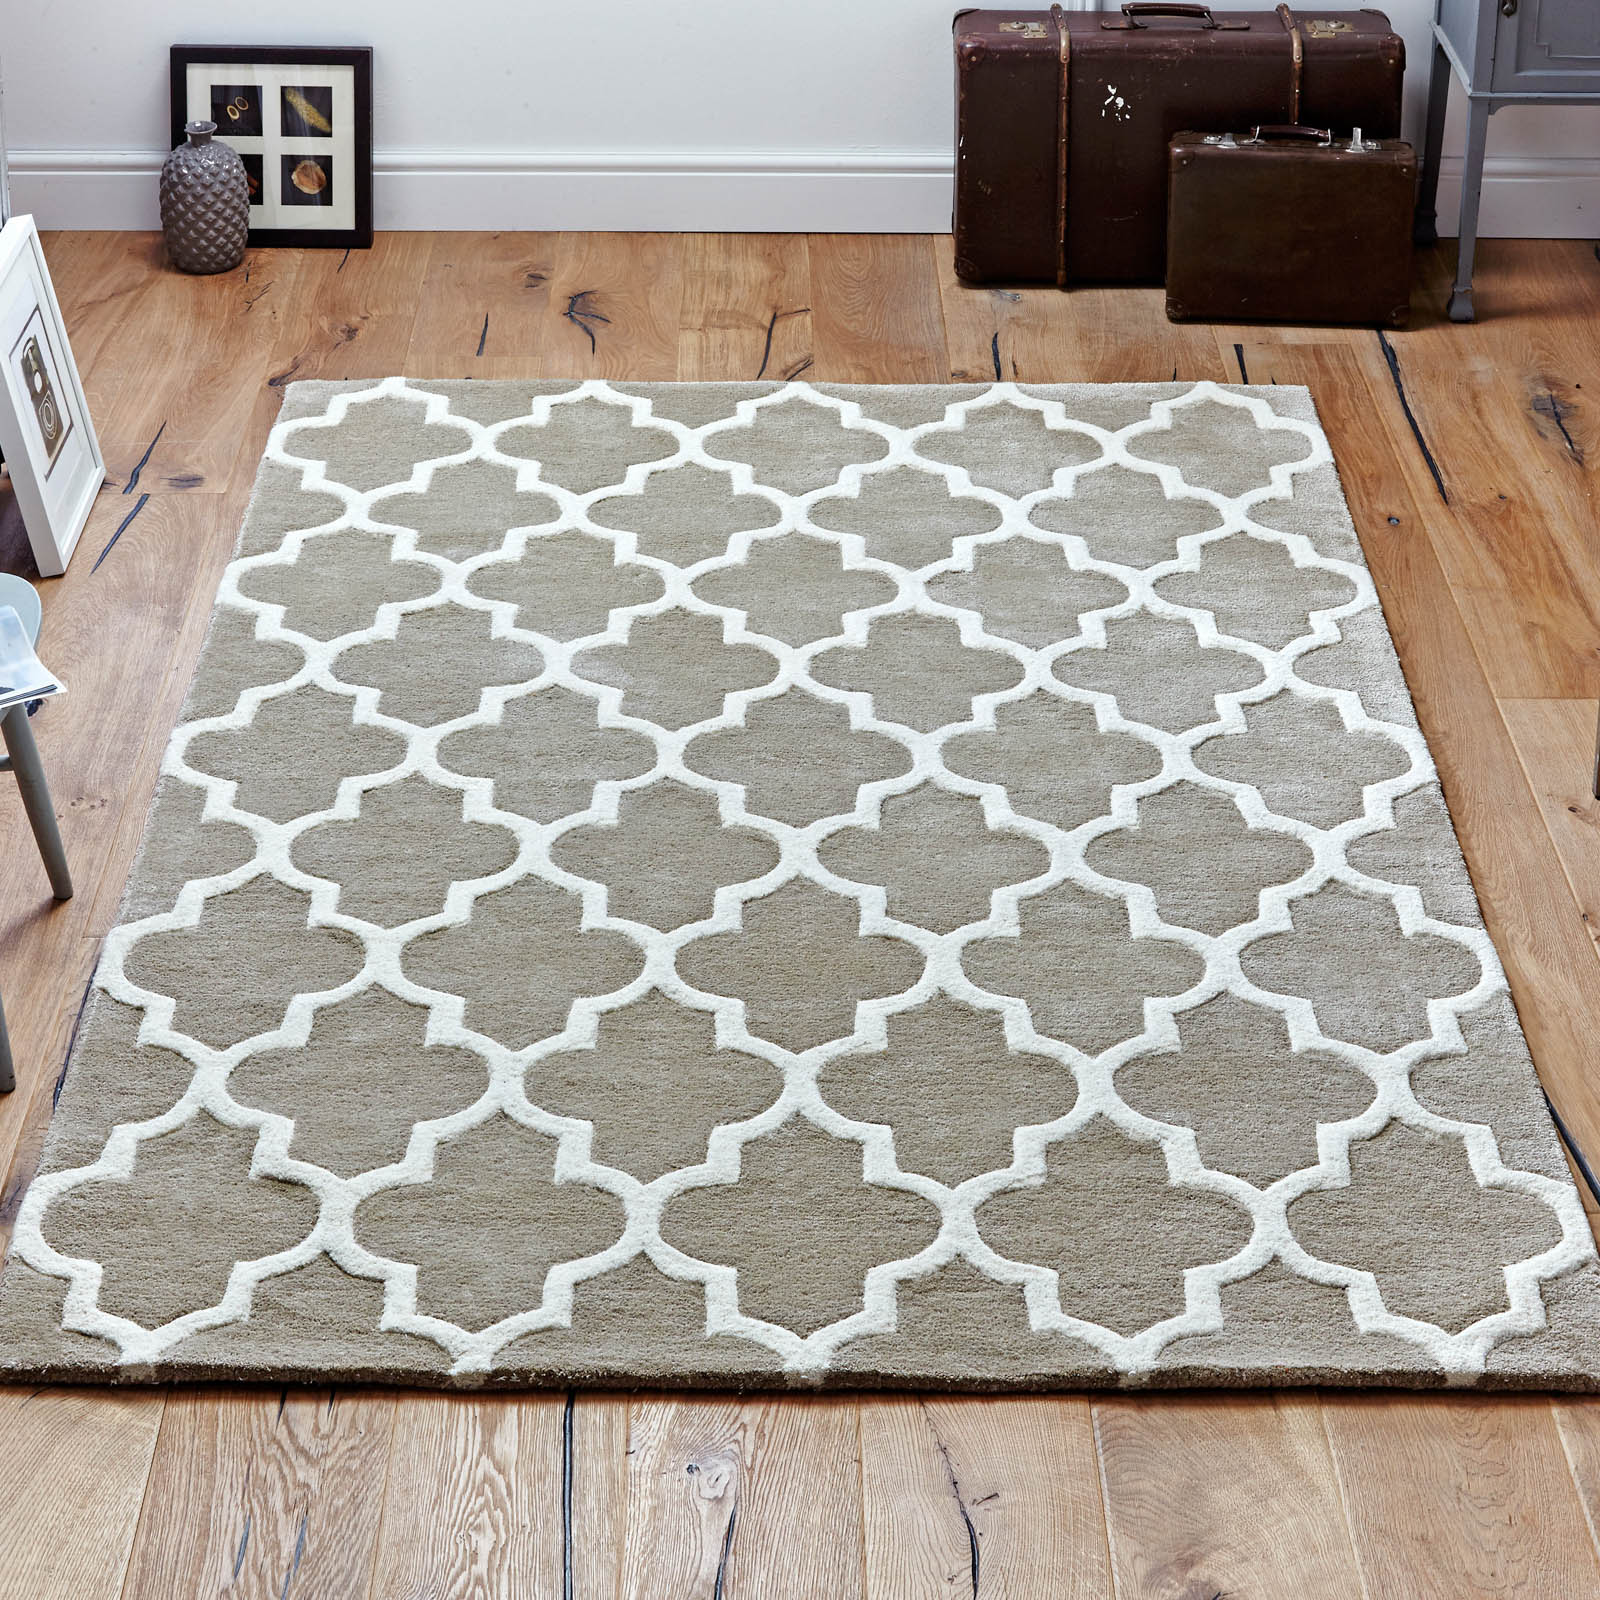 Arabesque Rug in Beige